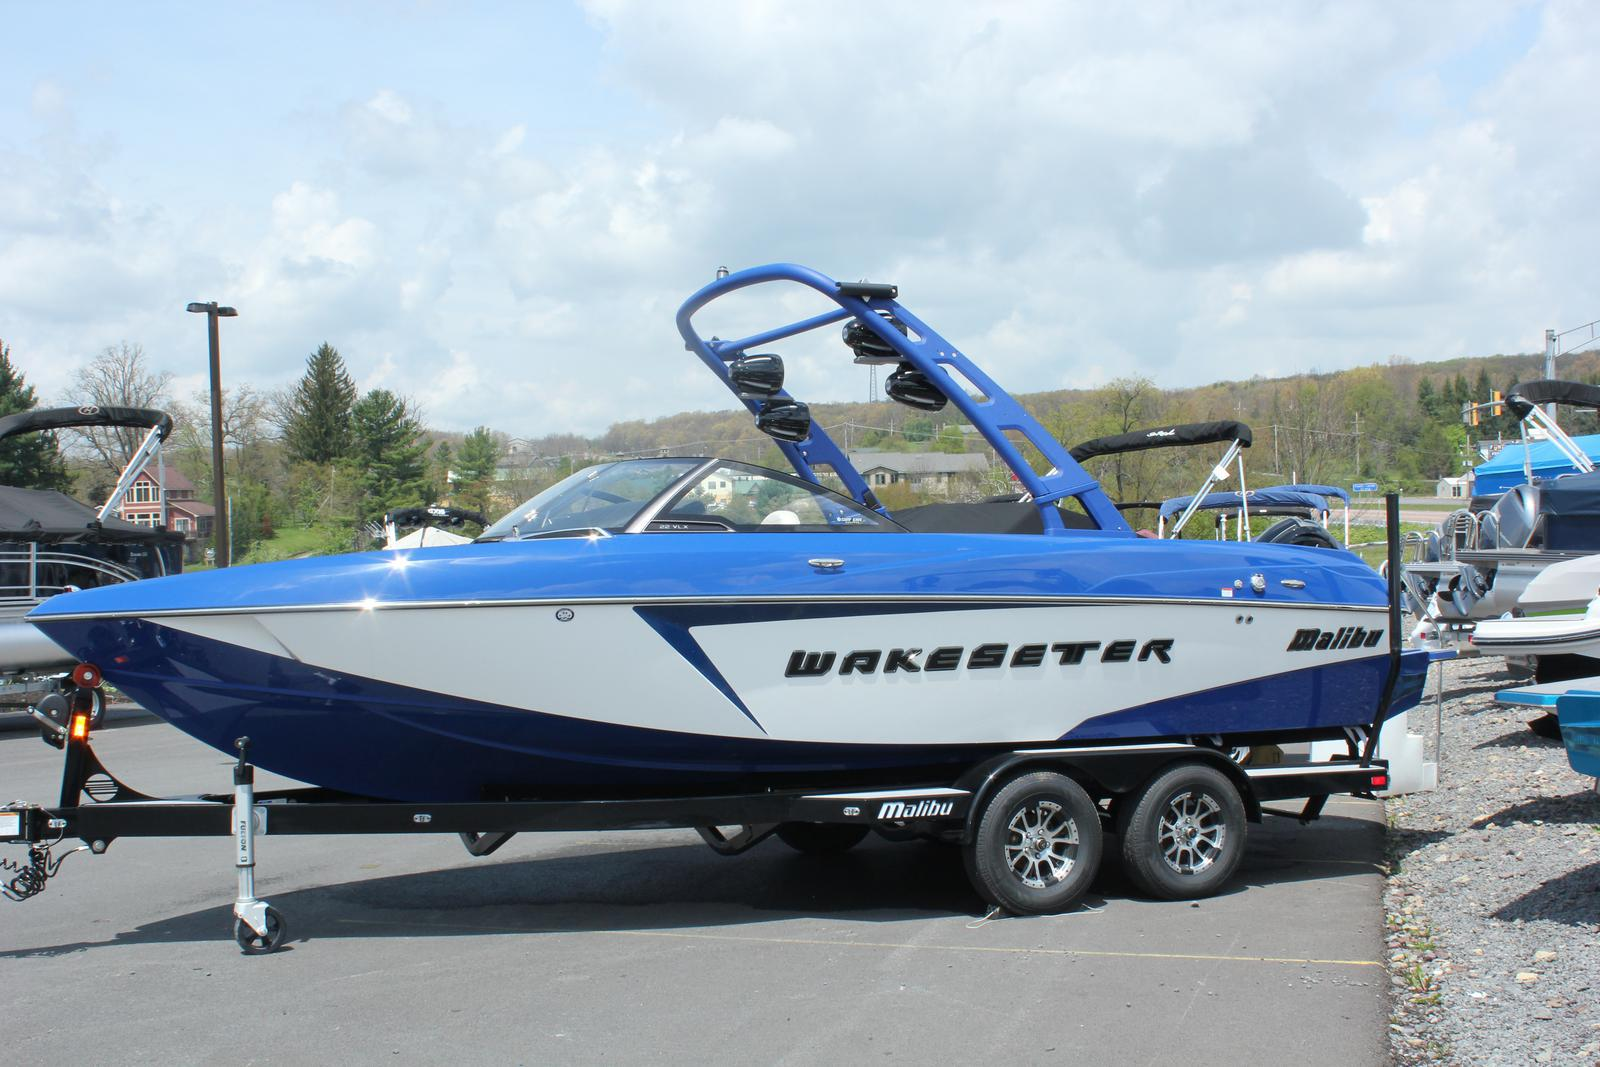 power boats malibu boats power wedge rh powerboatsgeisuke blogspot com 2006 malibu wakesetter owners manual 2008 malibu wakesetter 23 lsv owners manual